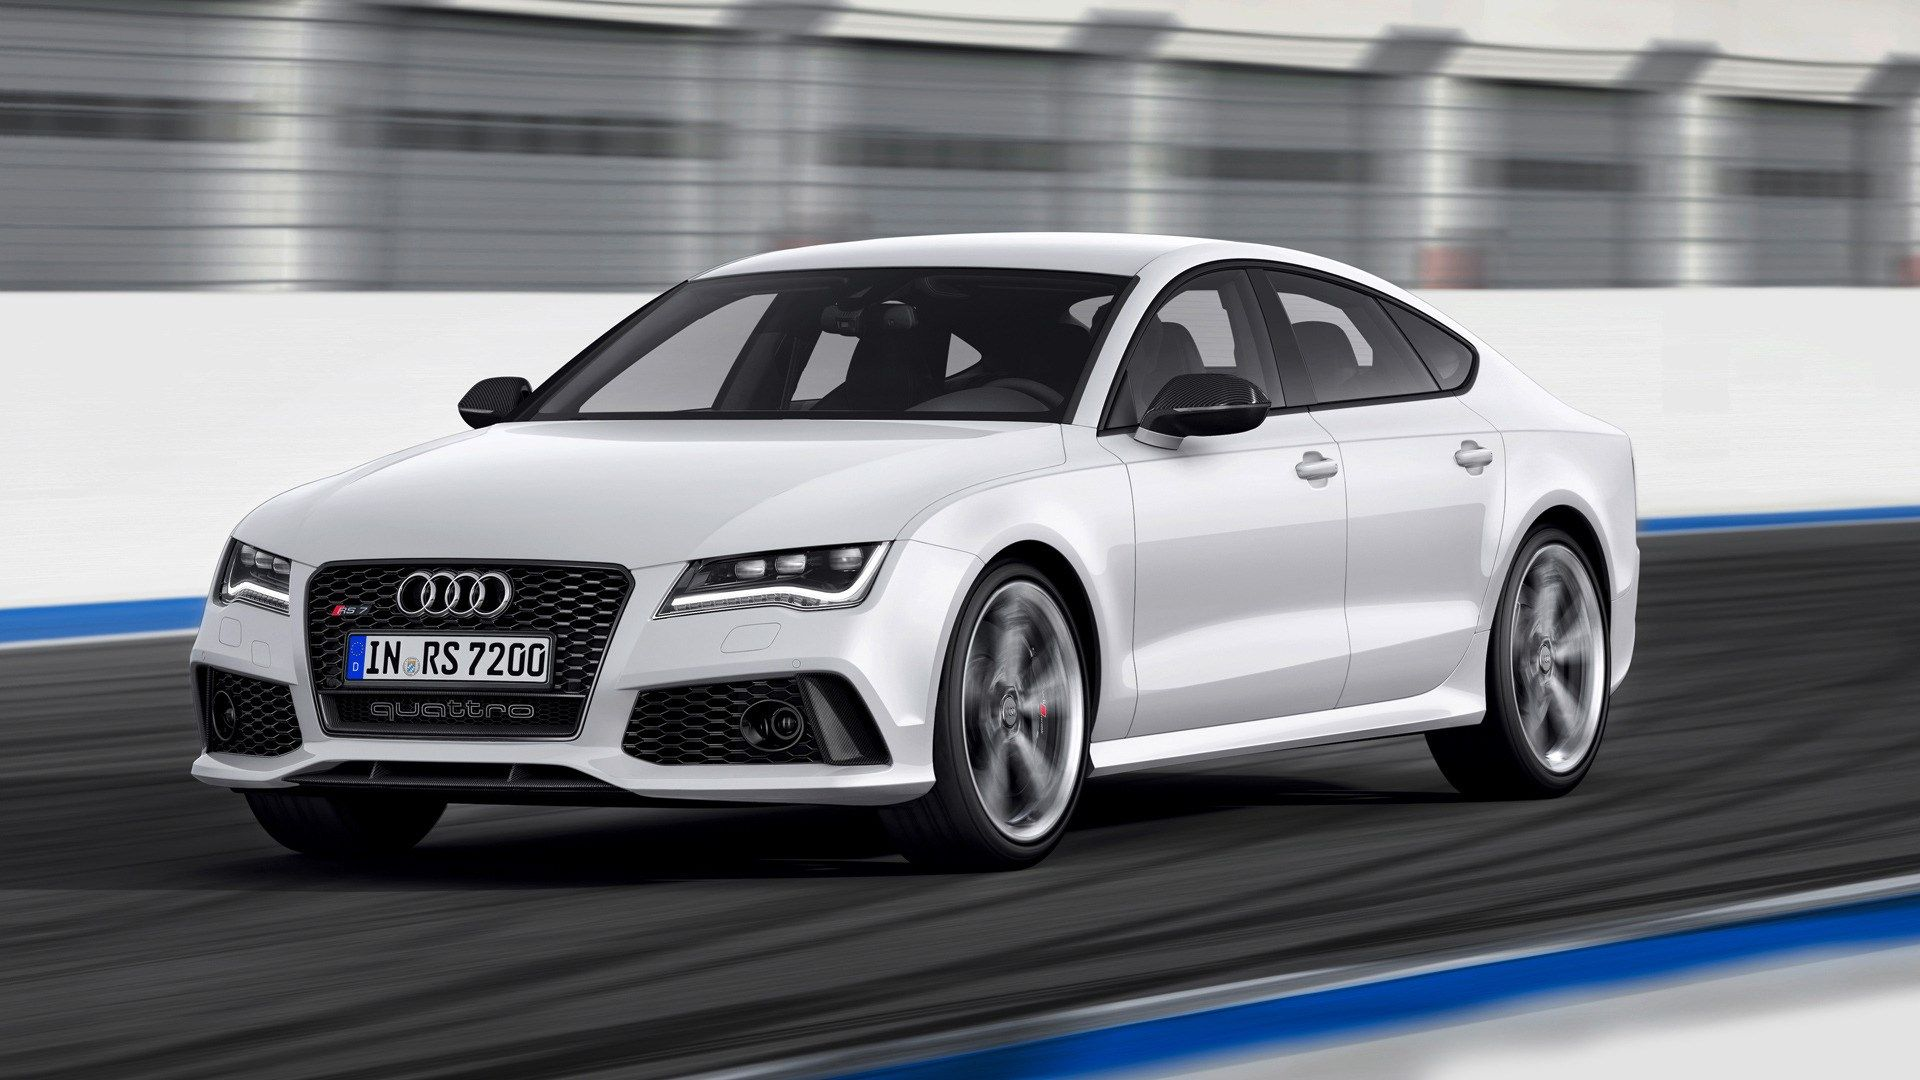 Audi Free Download Pictures Audi Rs7 Sportback Luxury Car Brands Car Wallpapers